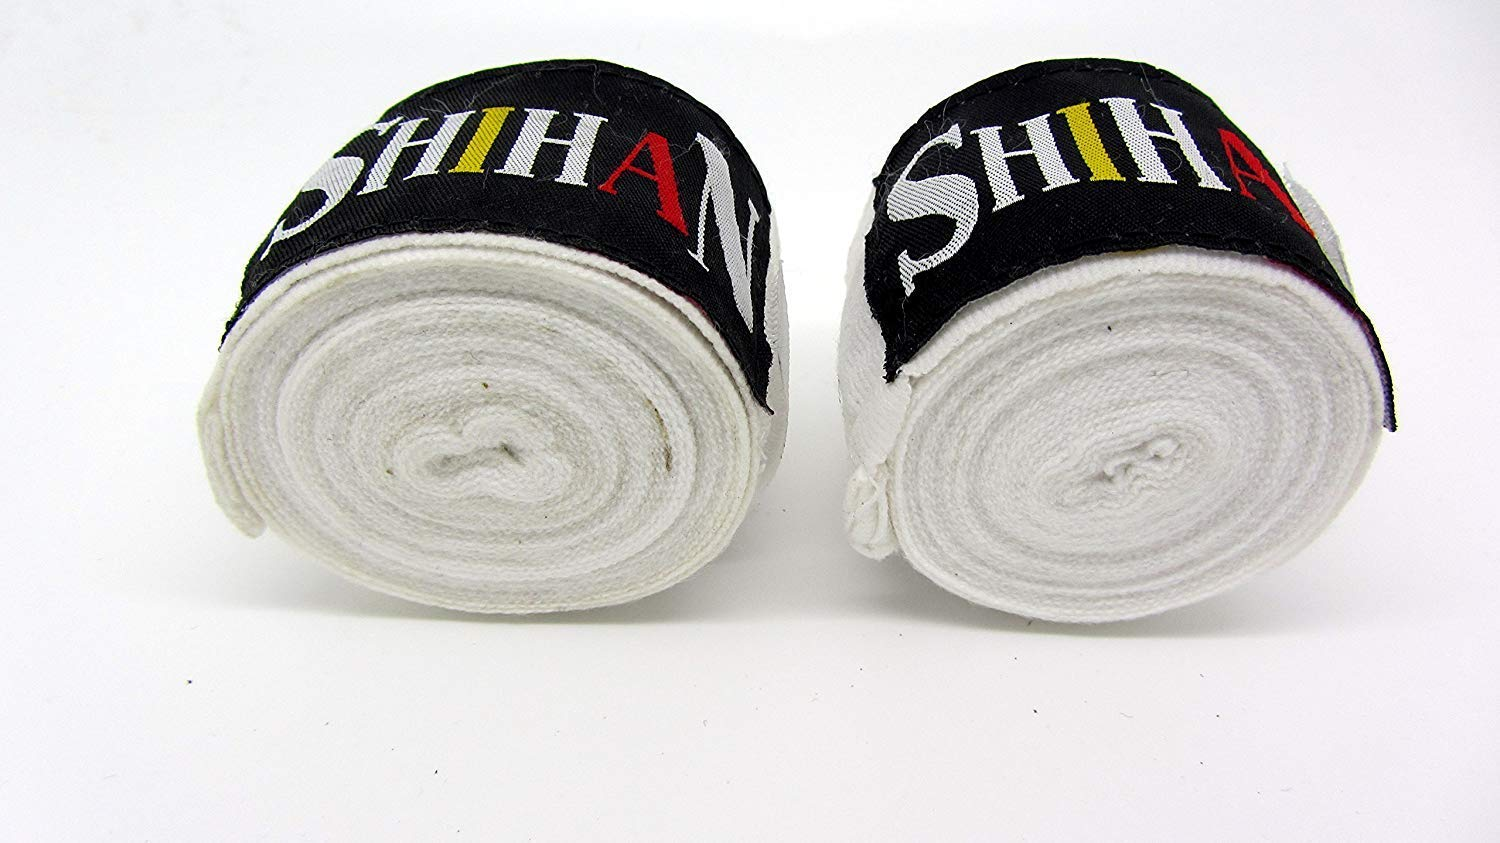 NEW Kickboxing Thai Boxing Hand Wraps Hand Protection Boxing Handwraps Cotton with Velcro